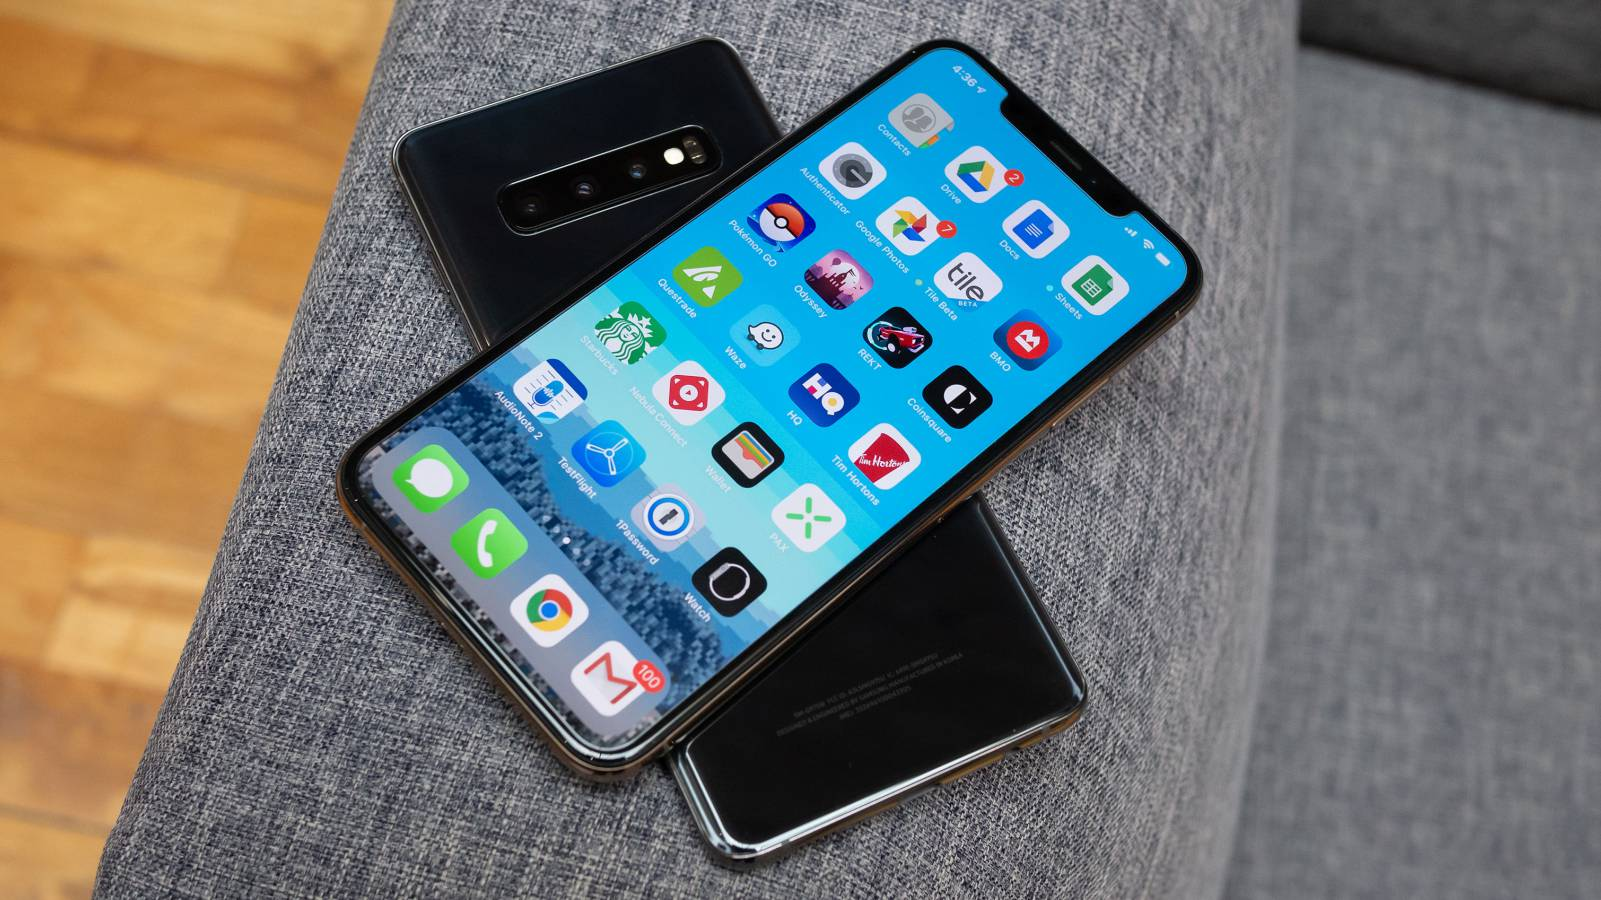 eMAG Telefoane iPhone Samsung lei Reducere